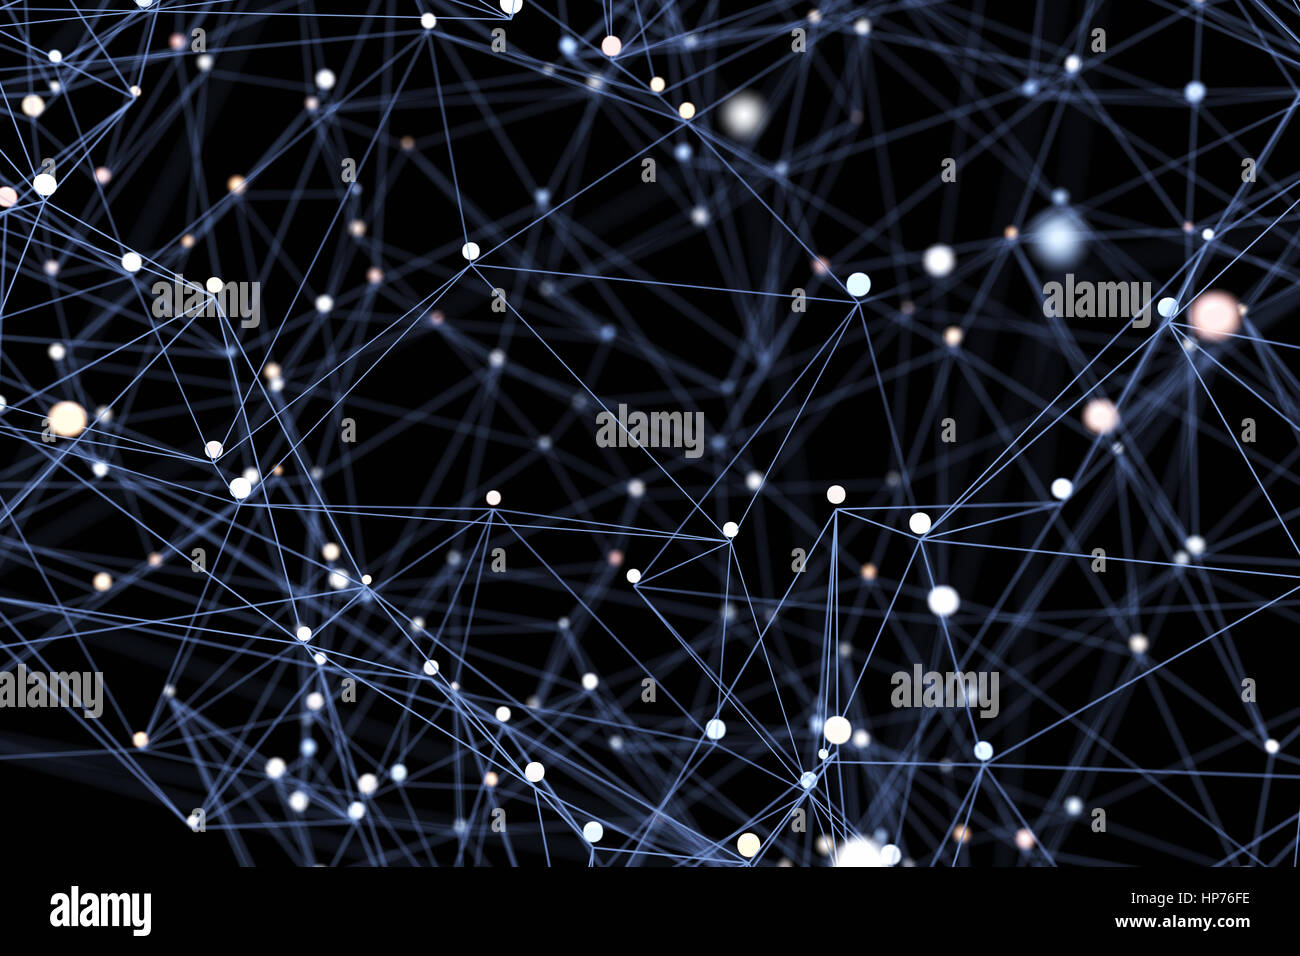 Abstract network background. 3D illustration - Stock Image